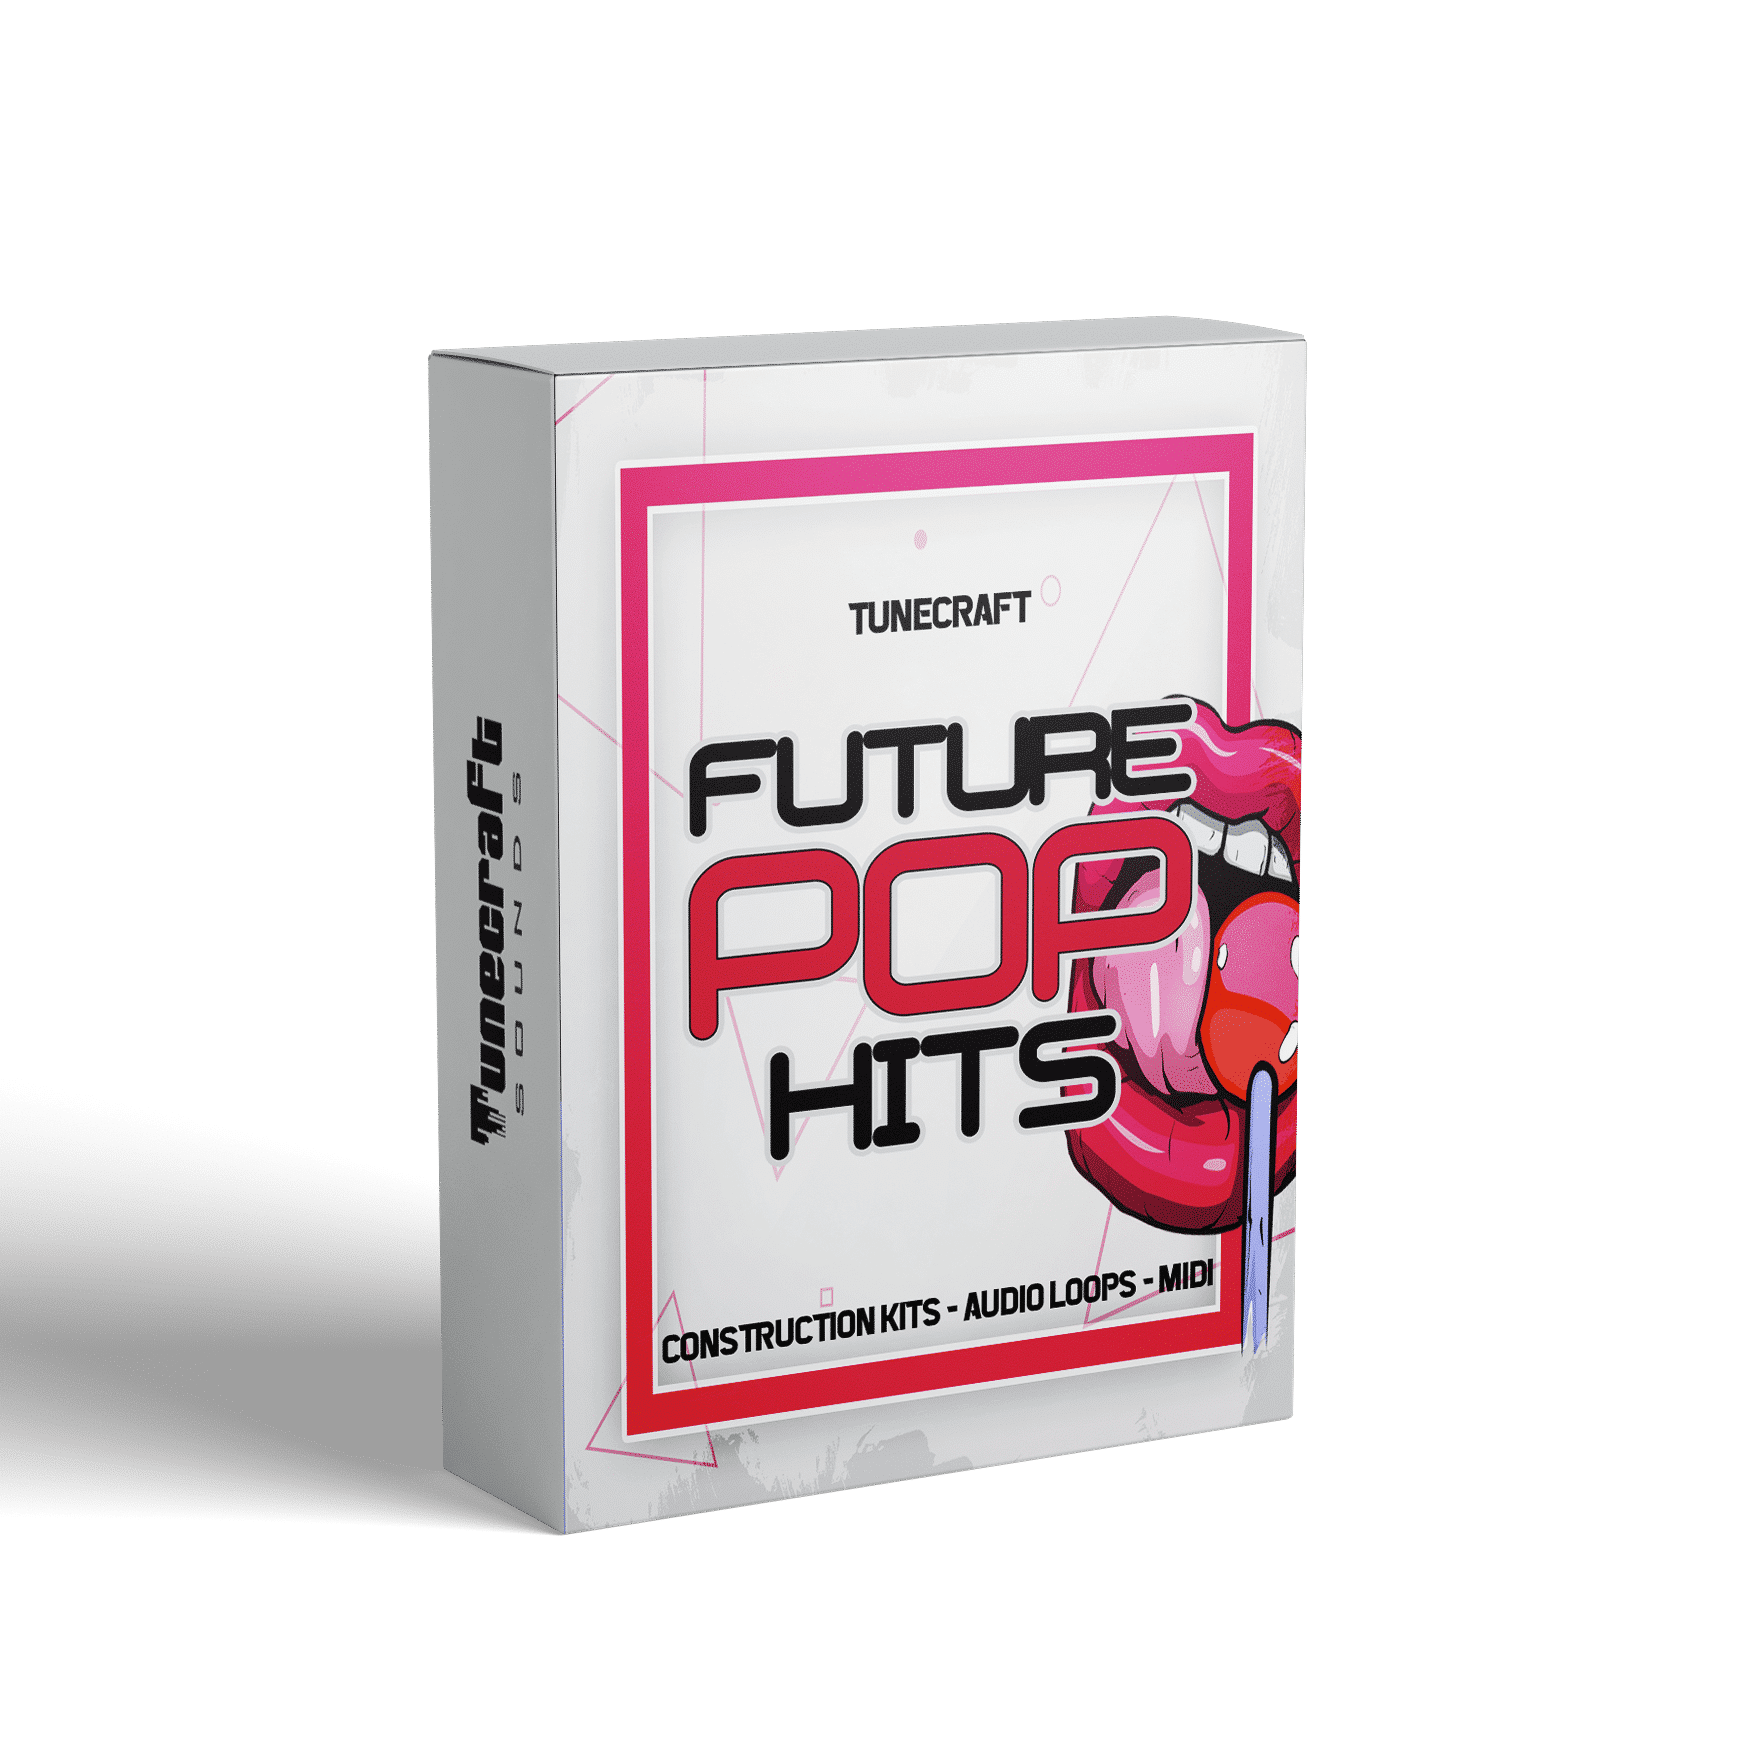 Future-Pop-Hits-3D-Box-trans